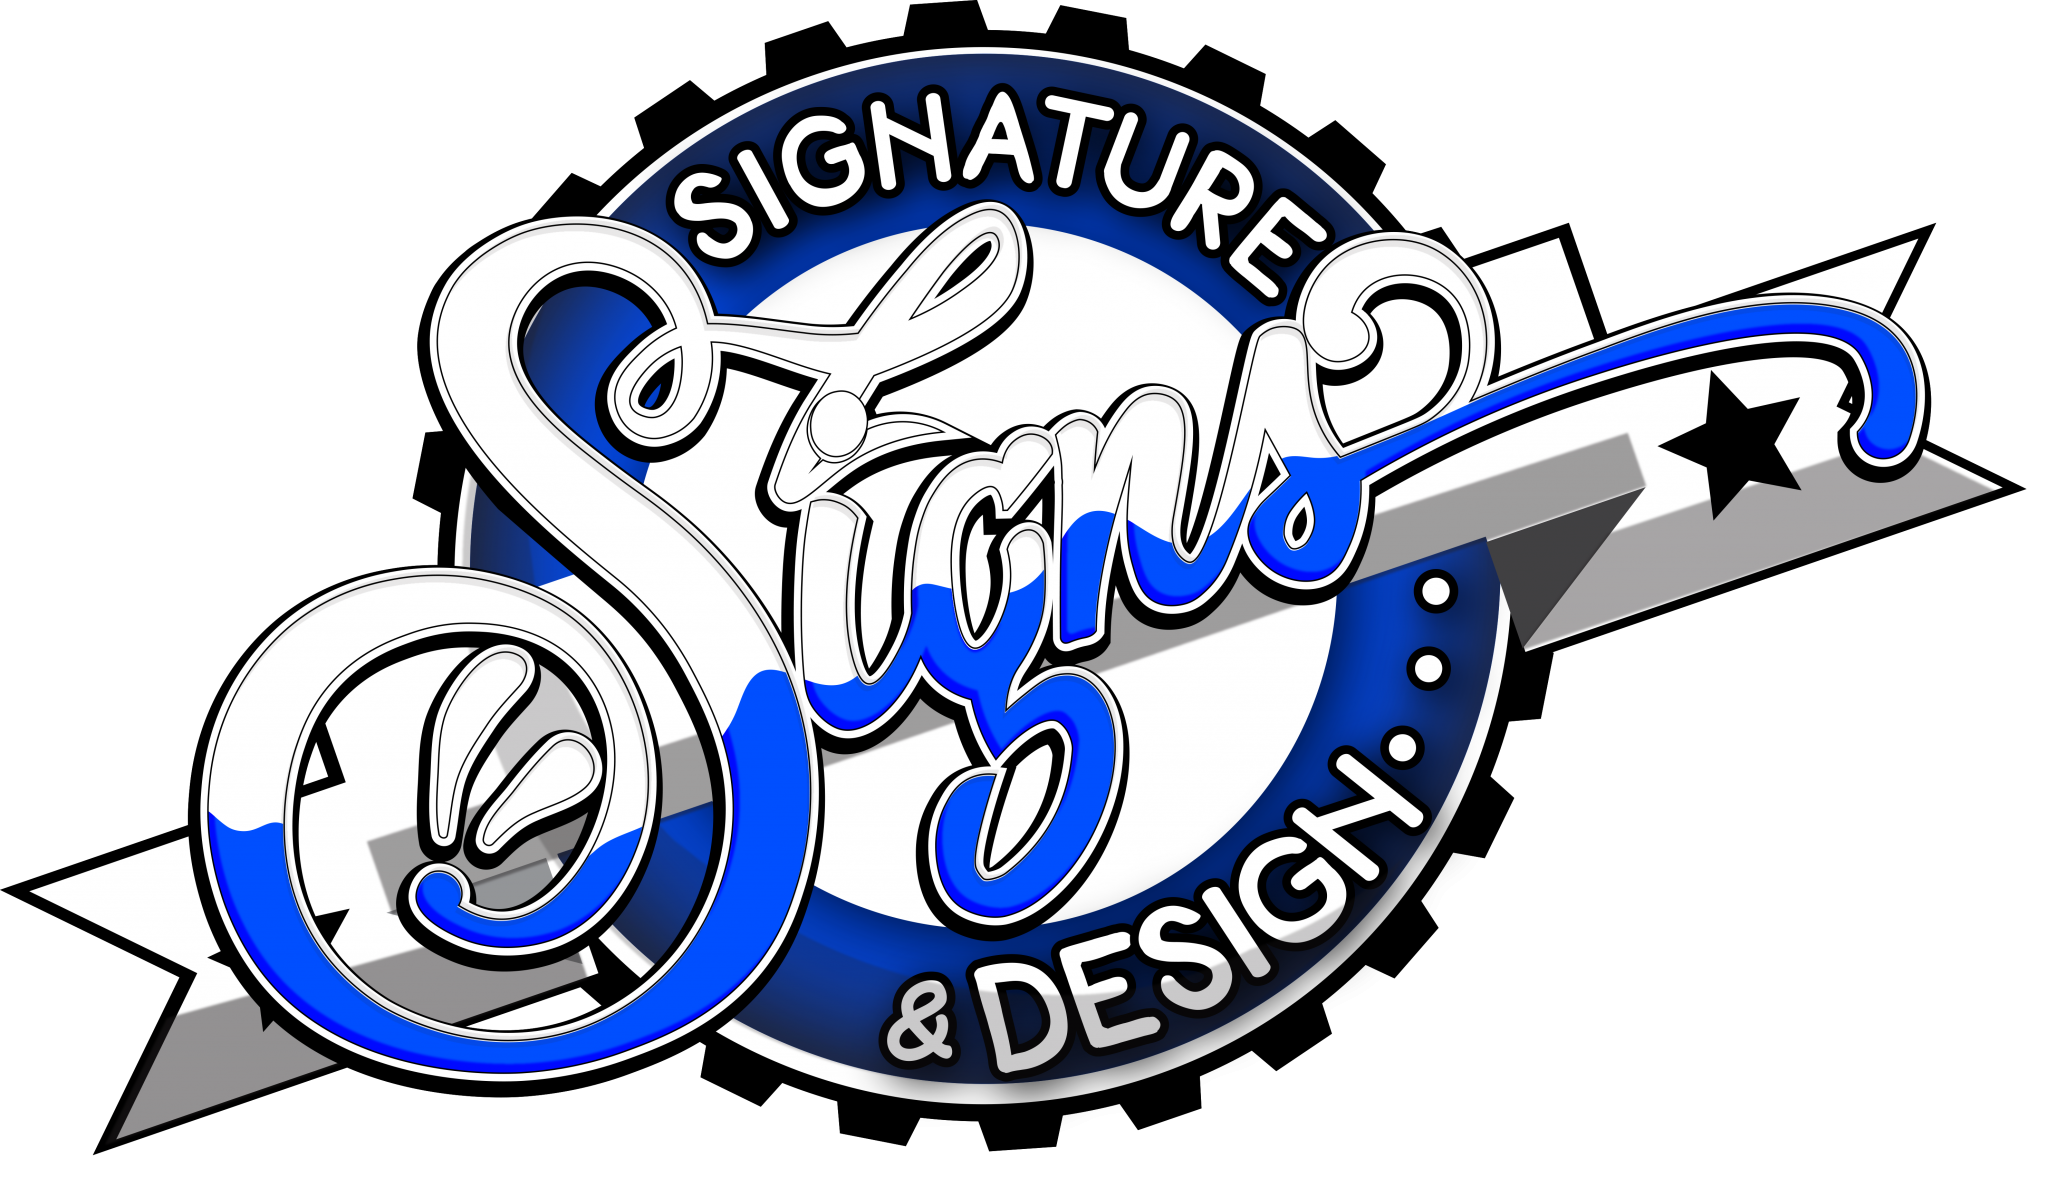 Signature Signs & Design - Jacksonville, Illinois